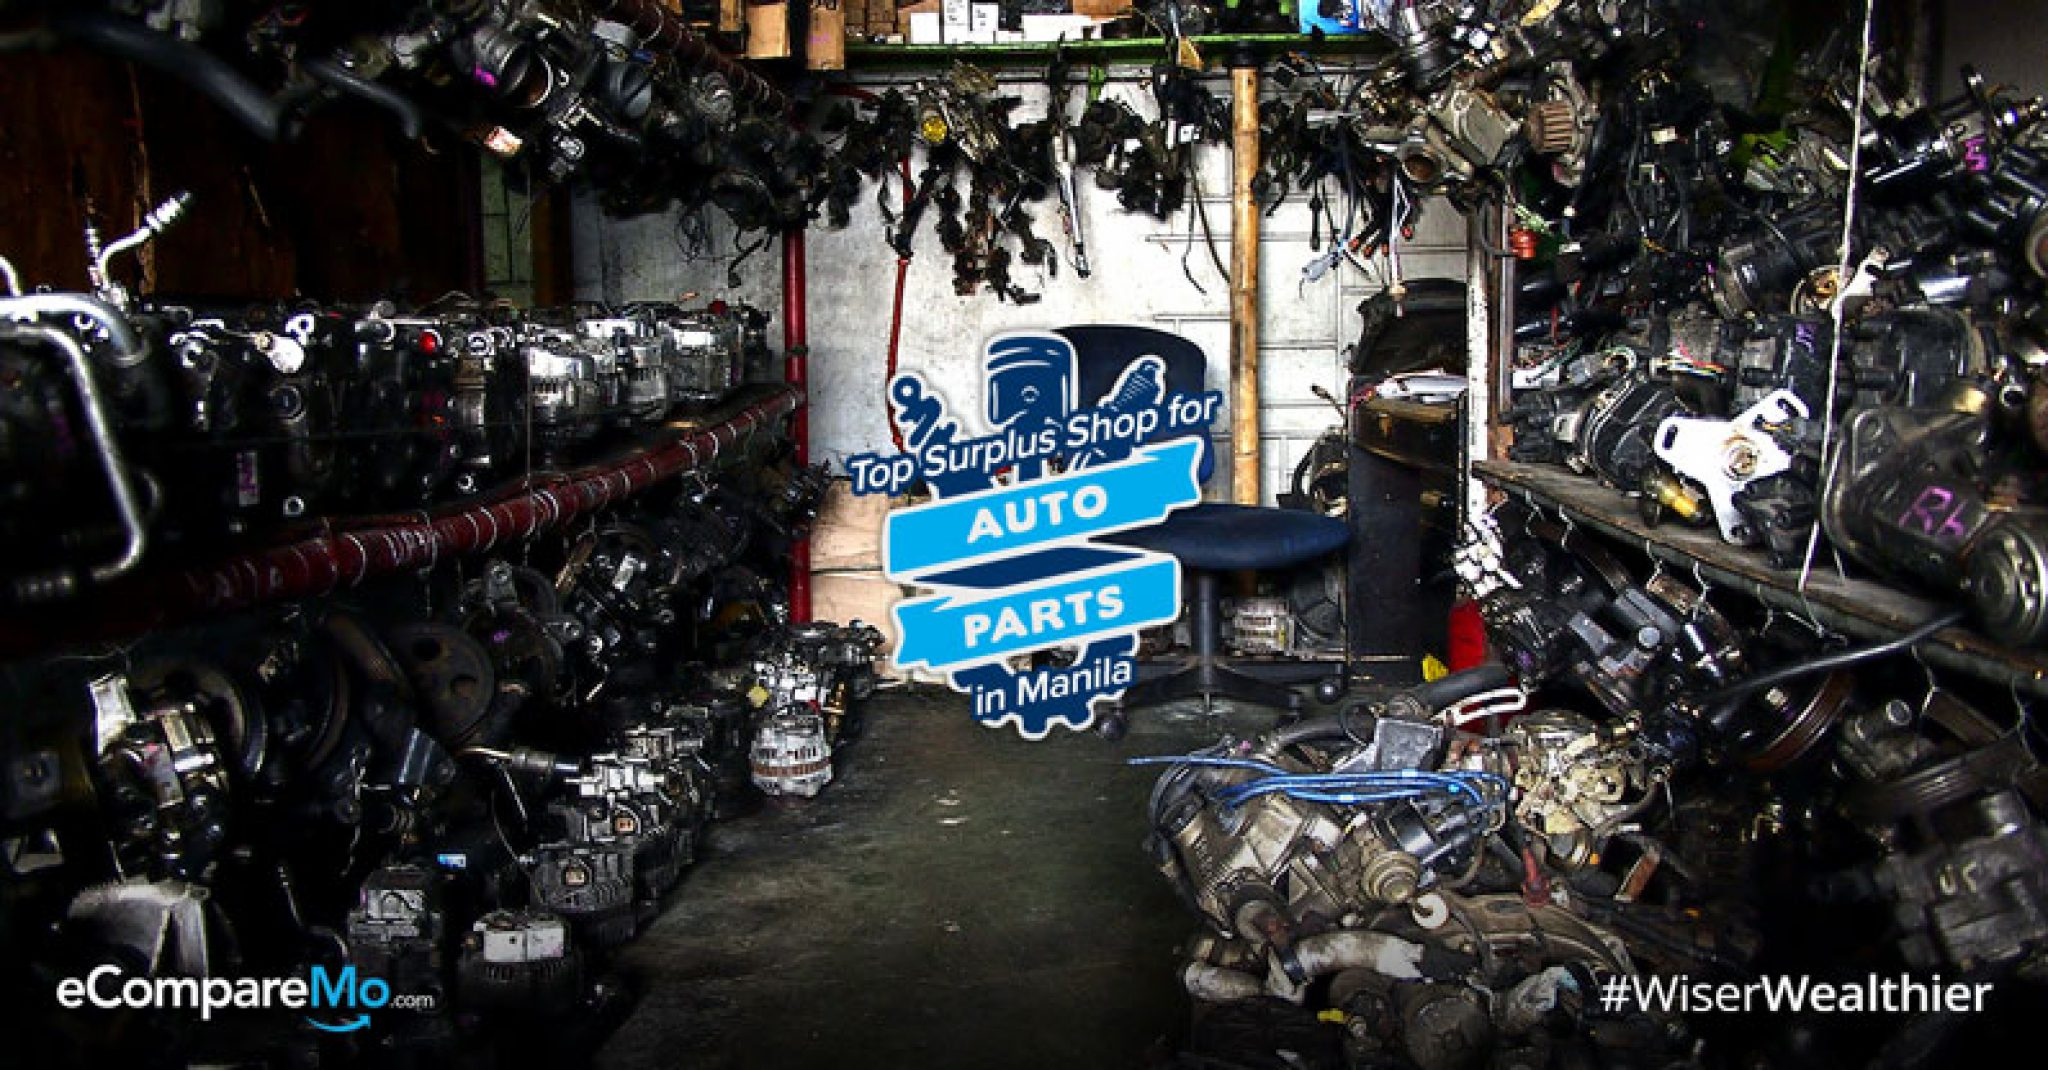 Top Surplus Shops For Auto Parts In Manila From Makati To Qc